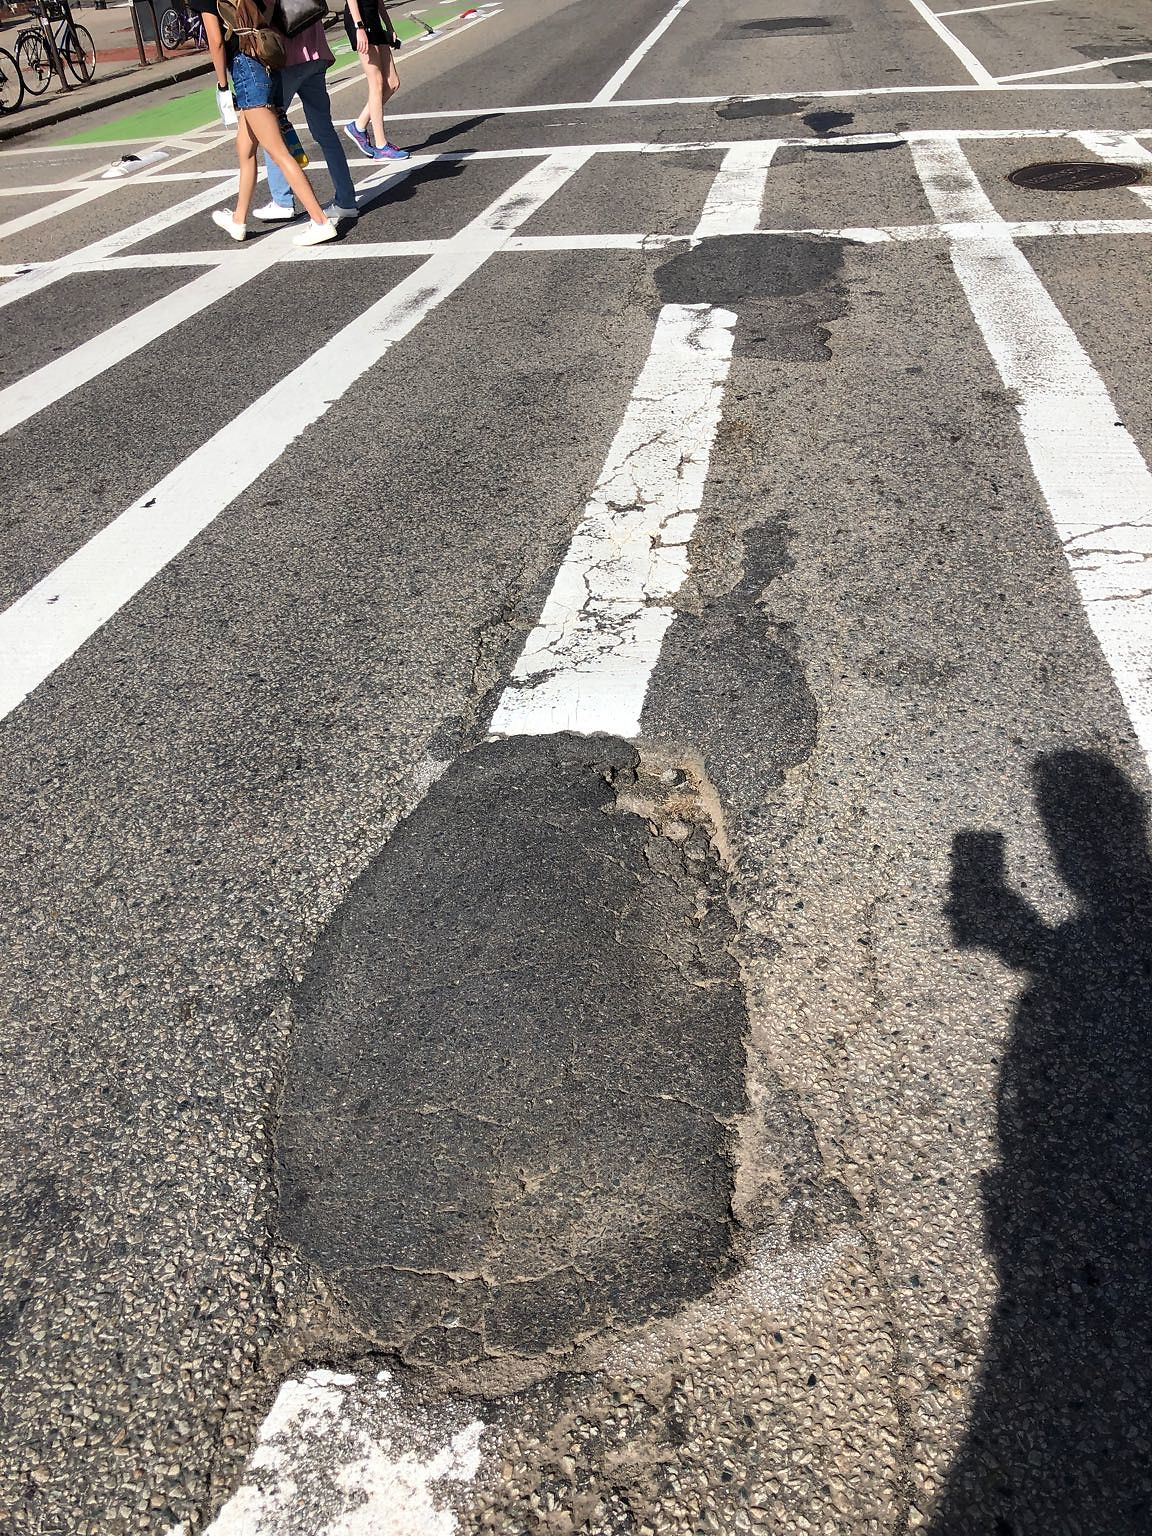 Pothole in center of crosswalk. Deceptively deep. A 90 year old woman fell and was injured today and onlookers report many people fall daily because of the defects in the crosswalk.